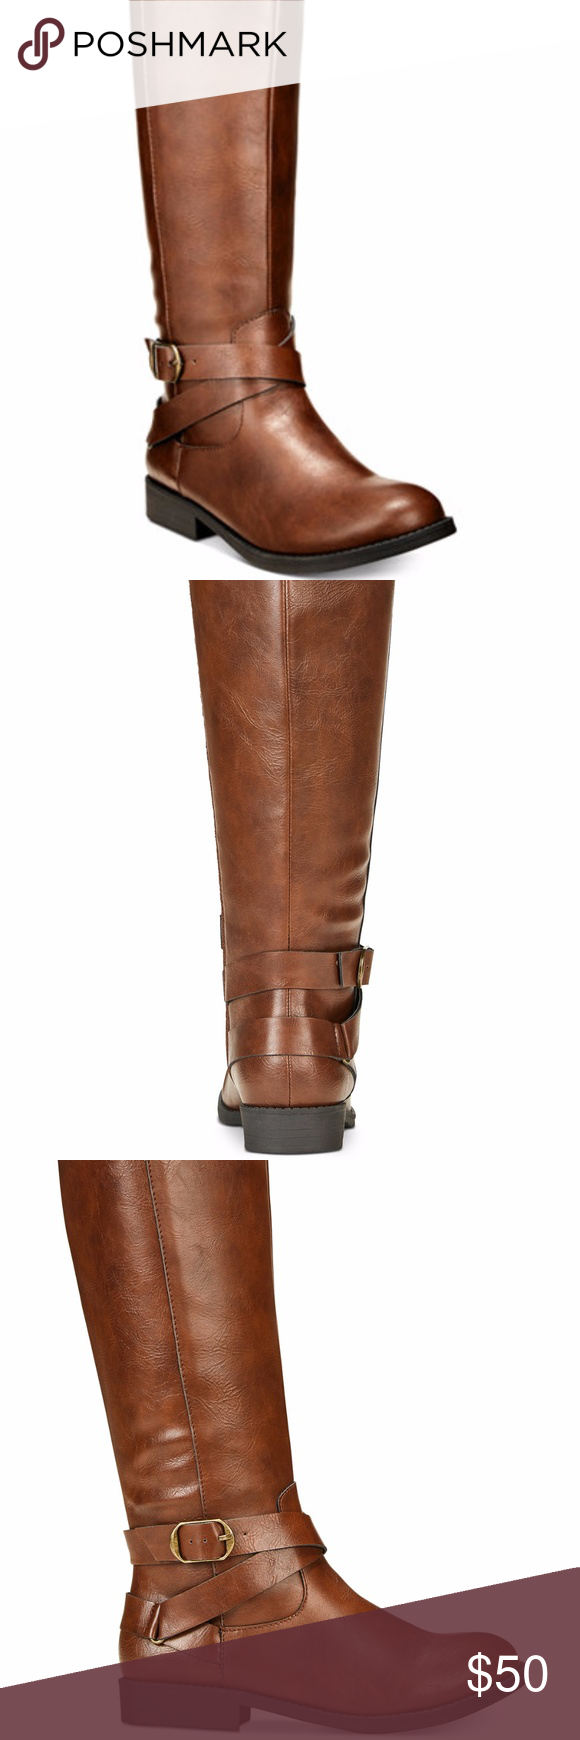 5bea3678f73 Style   Co Madixe Riding Boots color